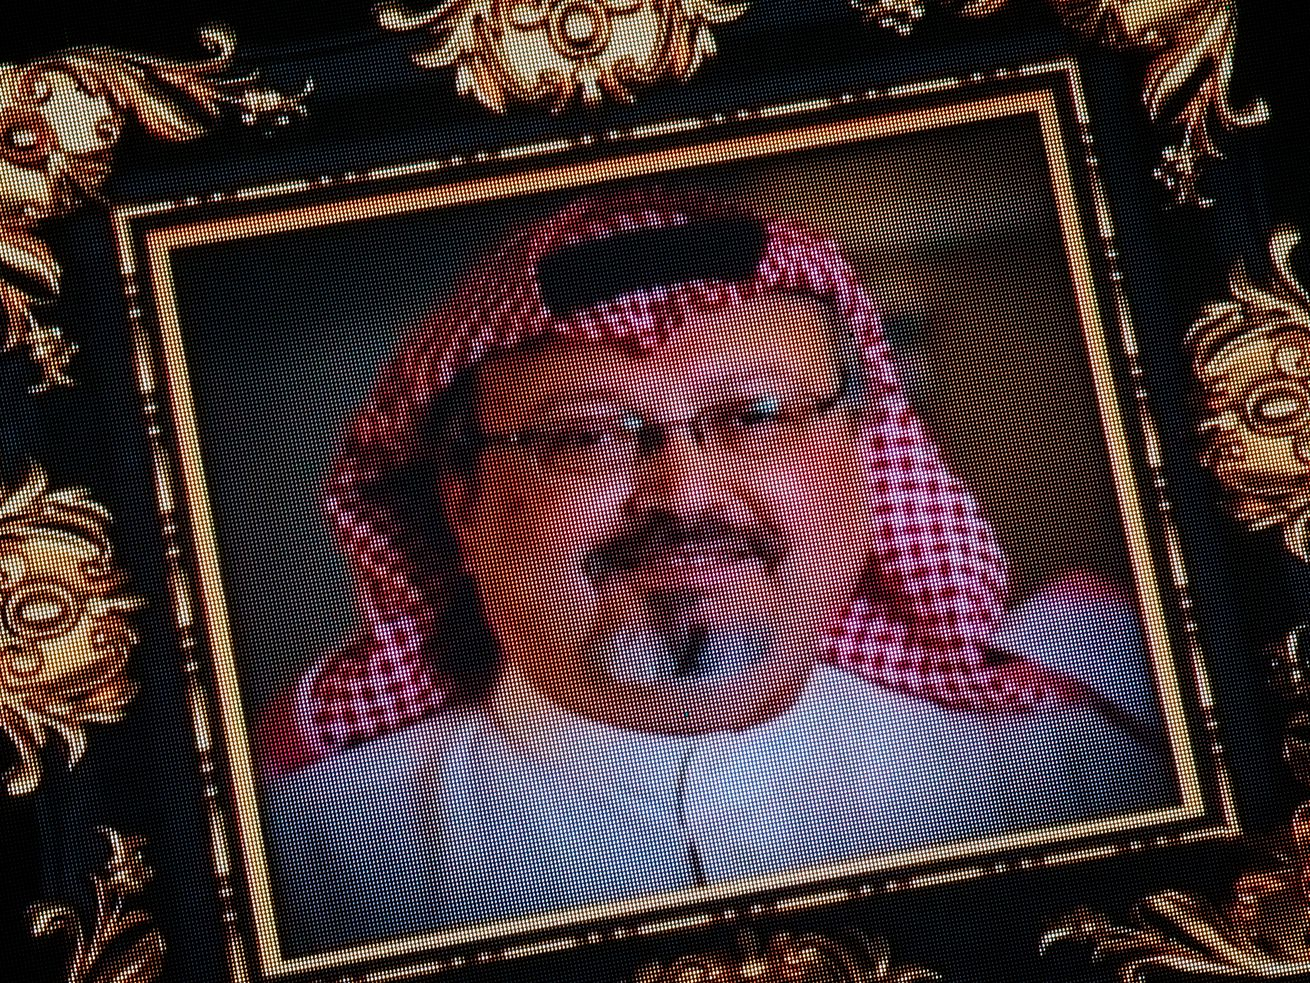 Images of murdered journalist Jamal Khashoggi are seen on a big screen during a commemorative ceremony held on November 11, 2018 in Istanbul, Turkey.